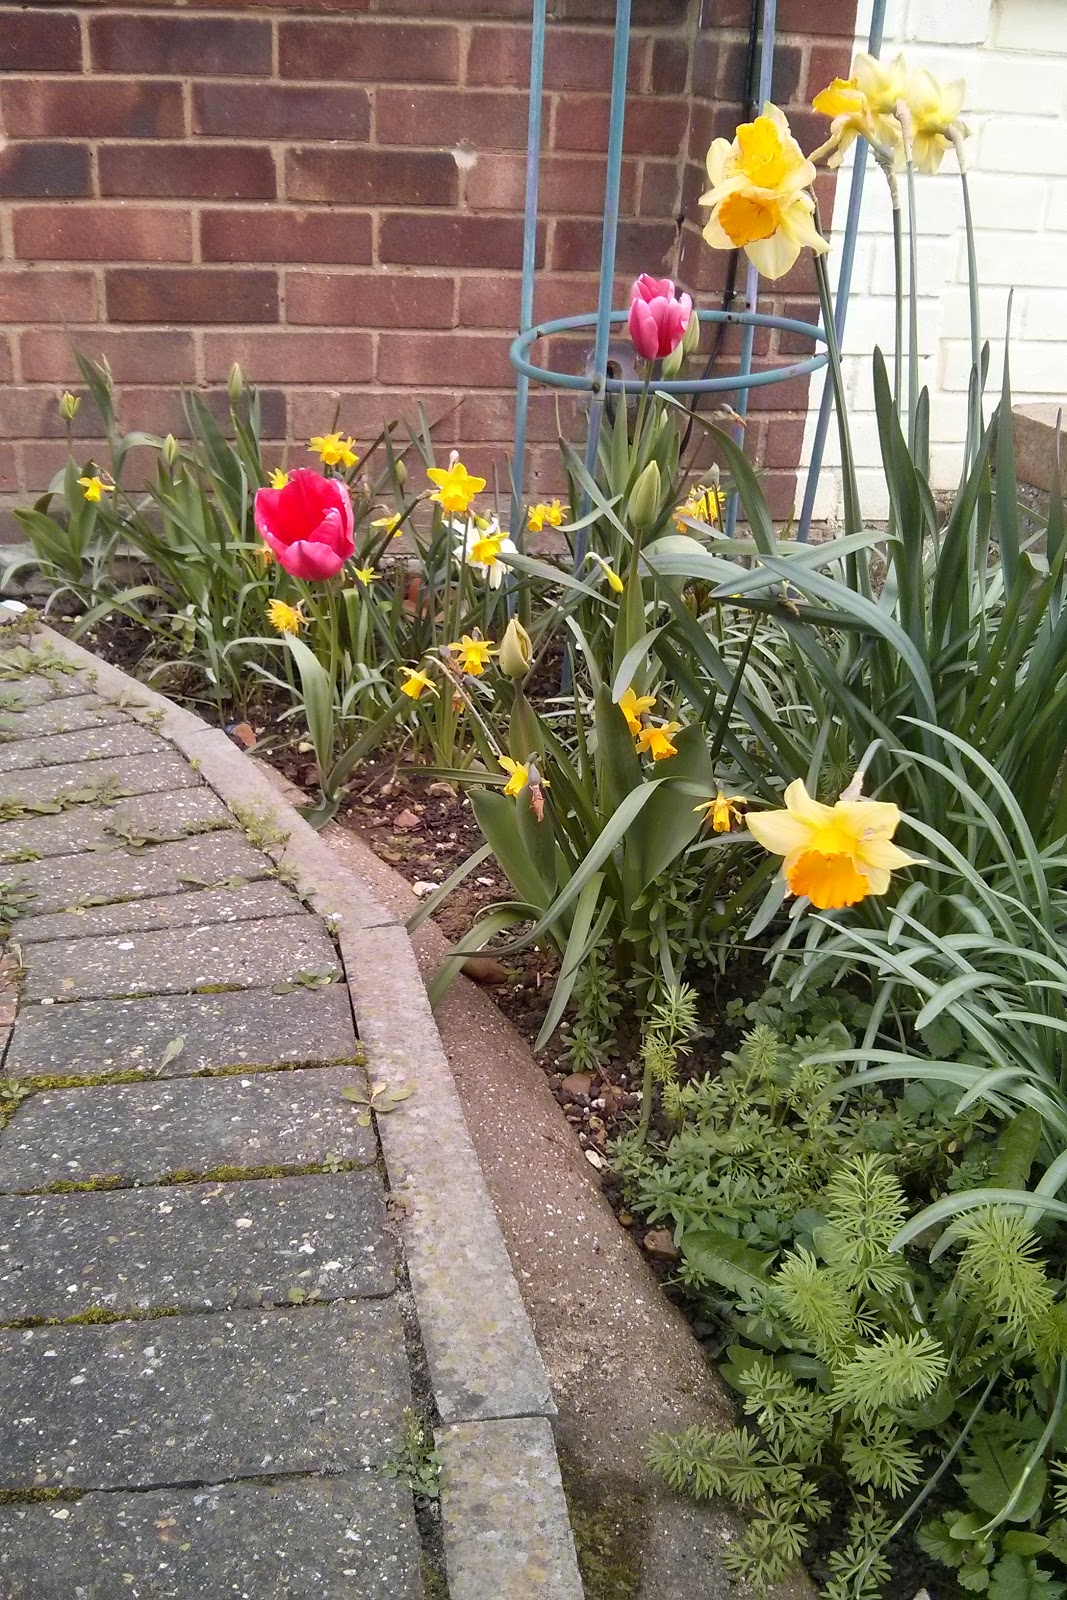 Daffodils and Tulips in bloom